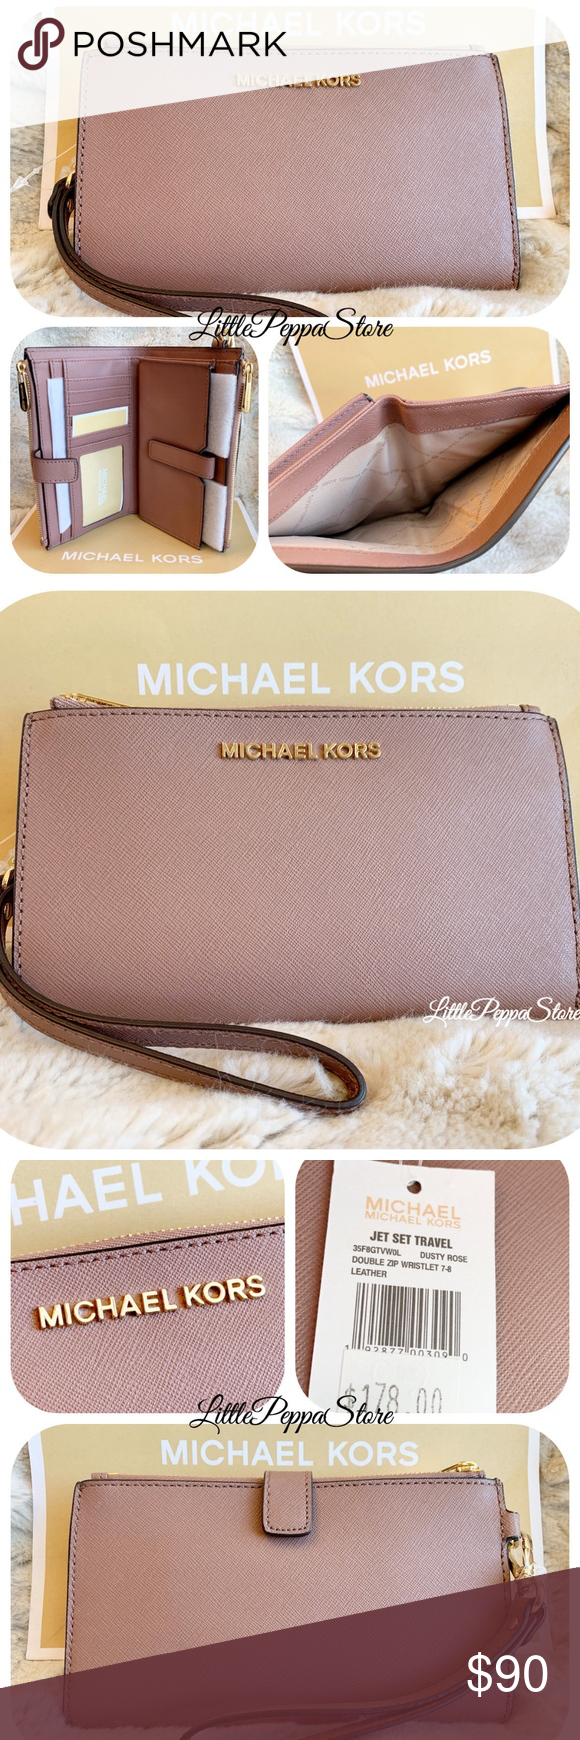 MICHAEL KORS DUSTY ROSE DOUBLE ZIP WALLET WRISTLET STYLE